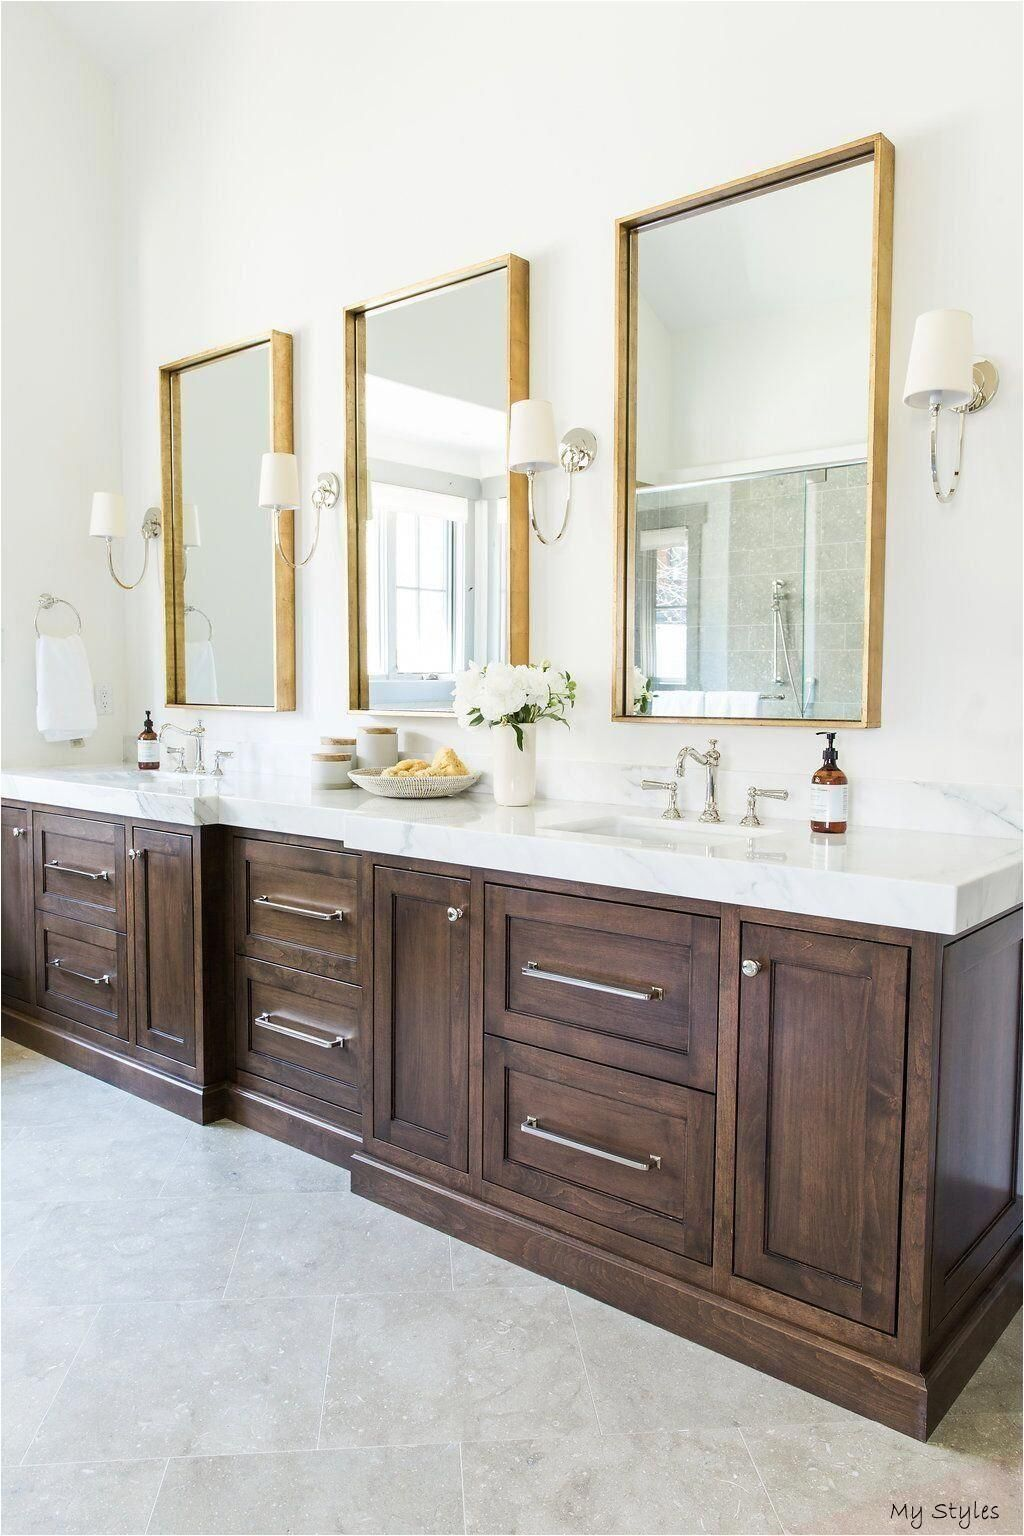 Jun 4 2020 This Pin Was Discovered By Christina Chapman Discover And Save Your Own Pins En 2020 Bathroom Vanity Relooking Salle De Bain Decoration Salle De Bain